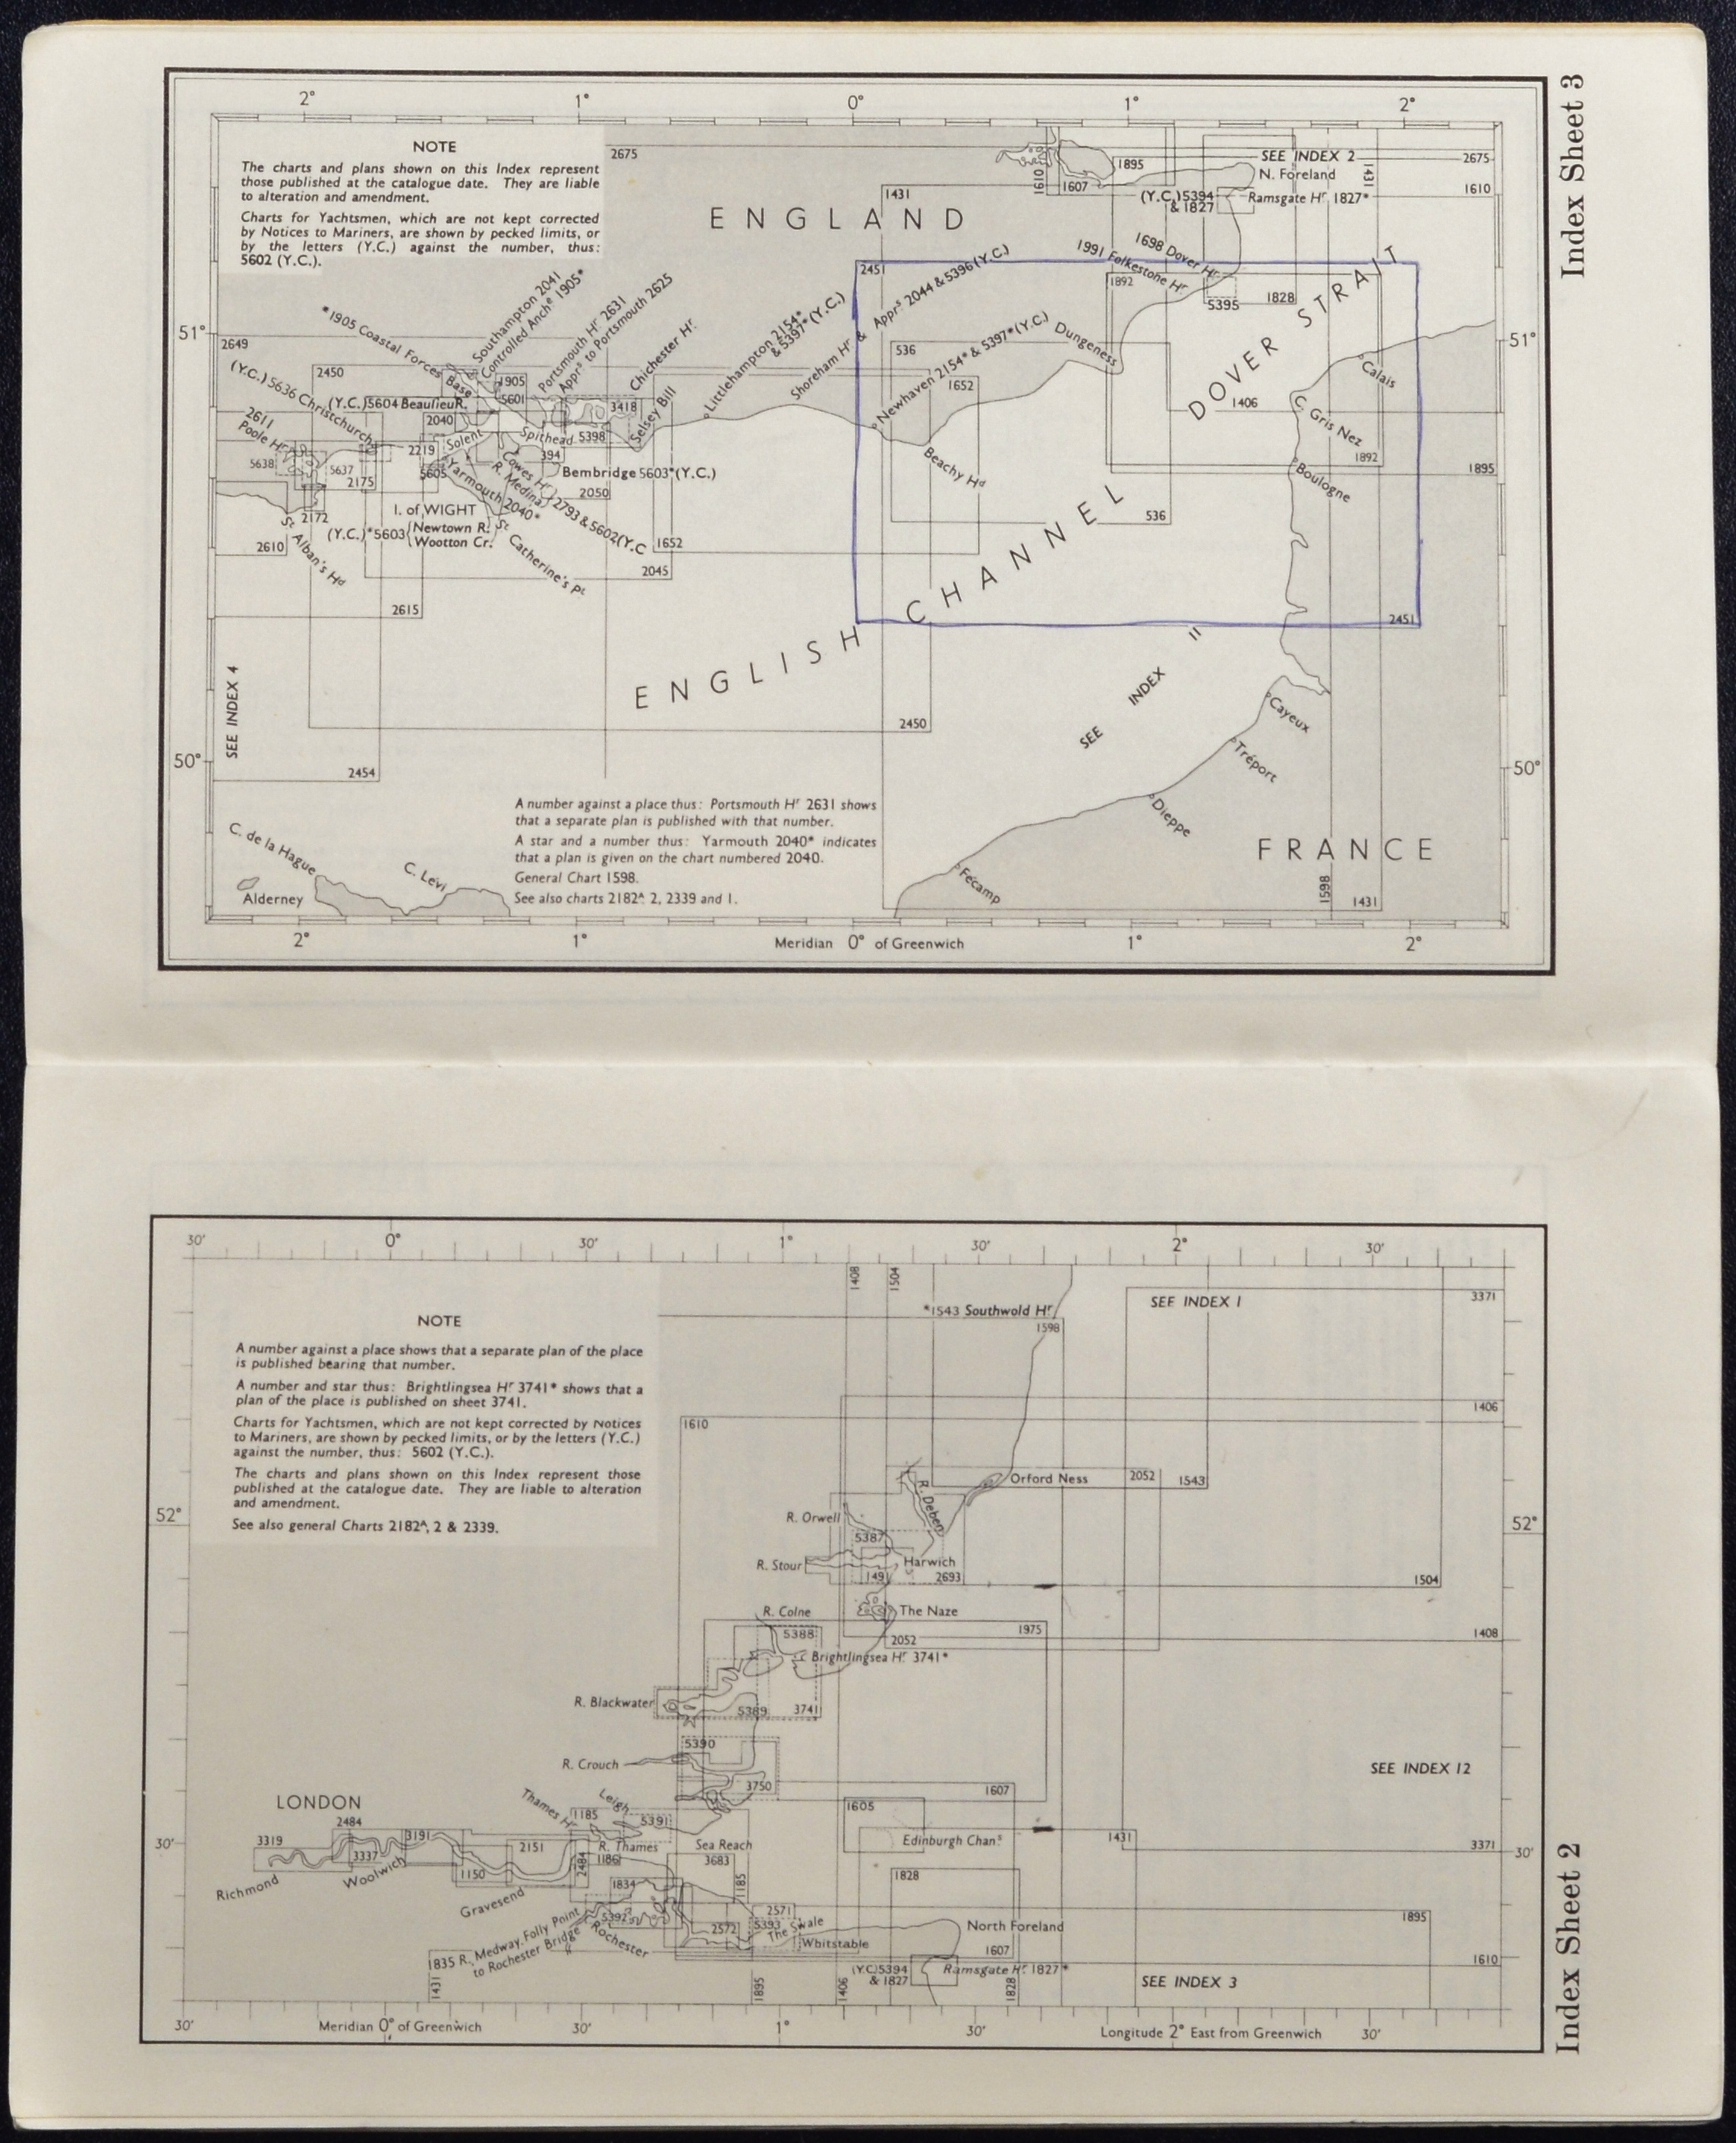 Home Edition 1969 - Catalogue of Admiralty Charts, England ...